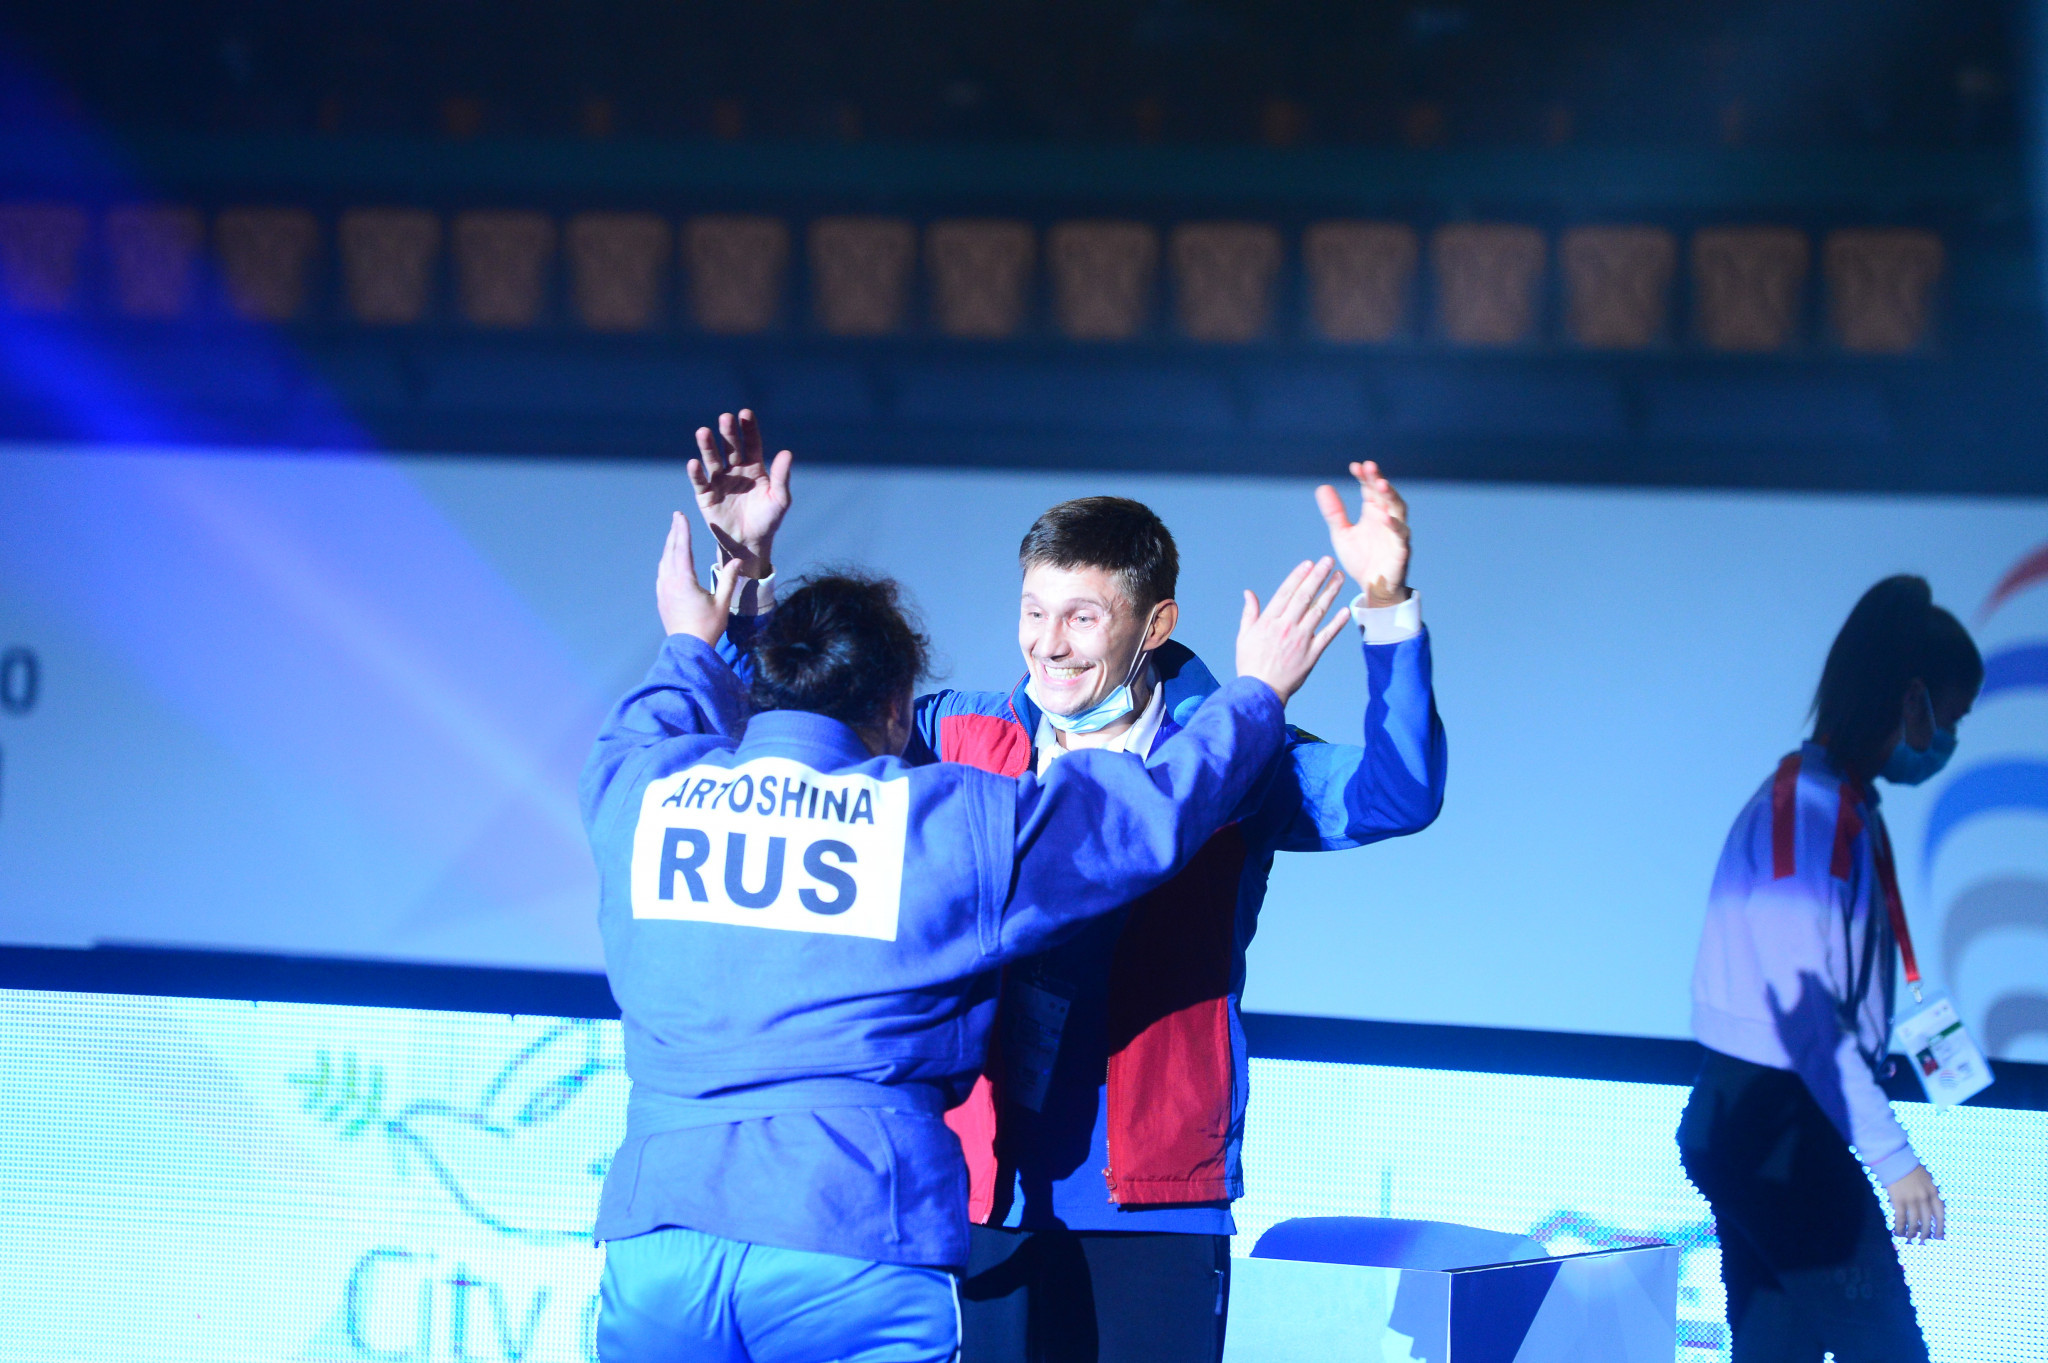 Russia win seven gold medals on last day of World Sambo Championships